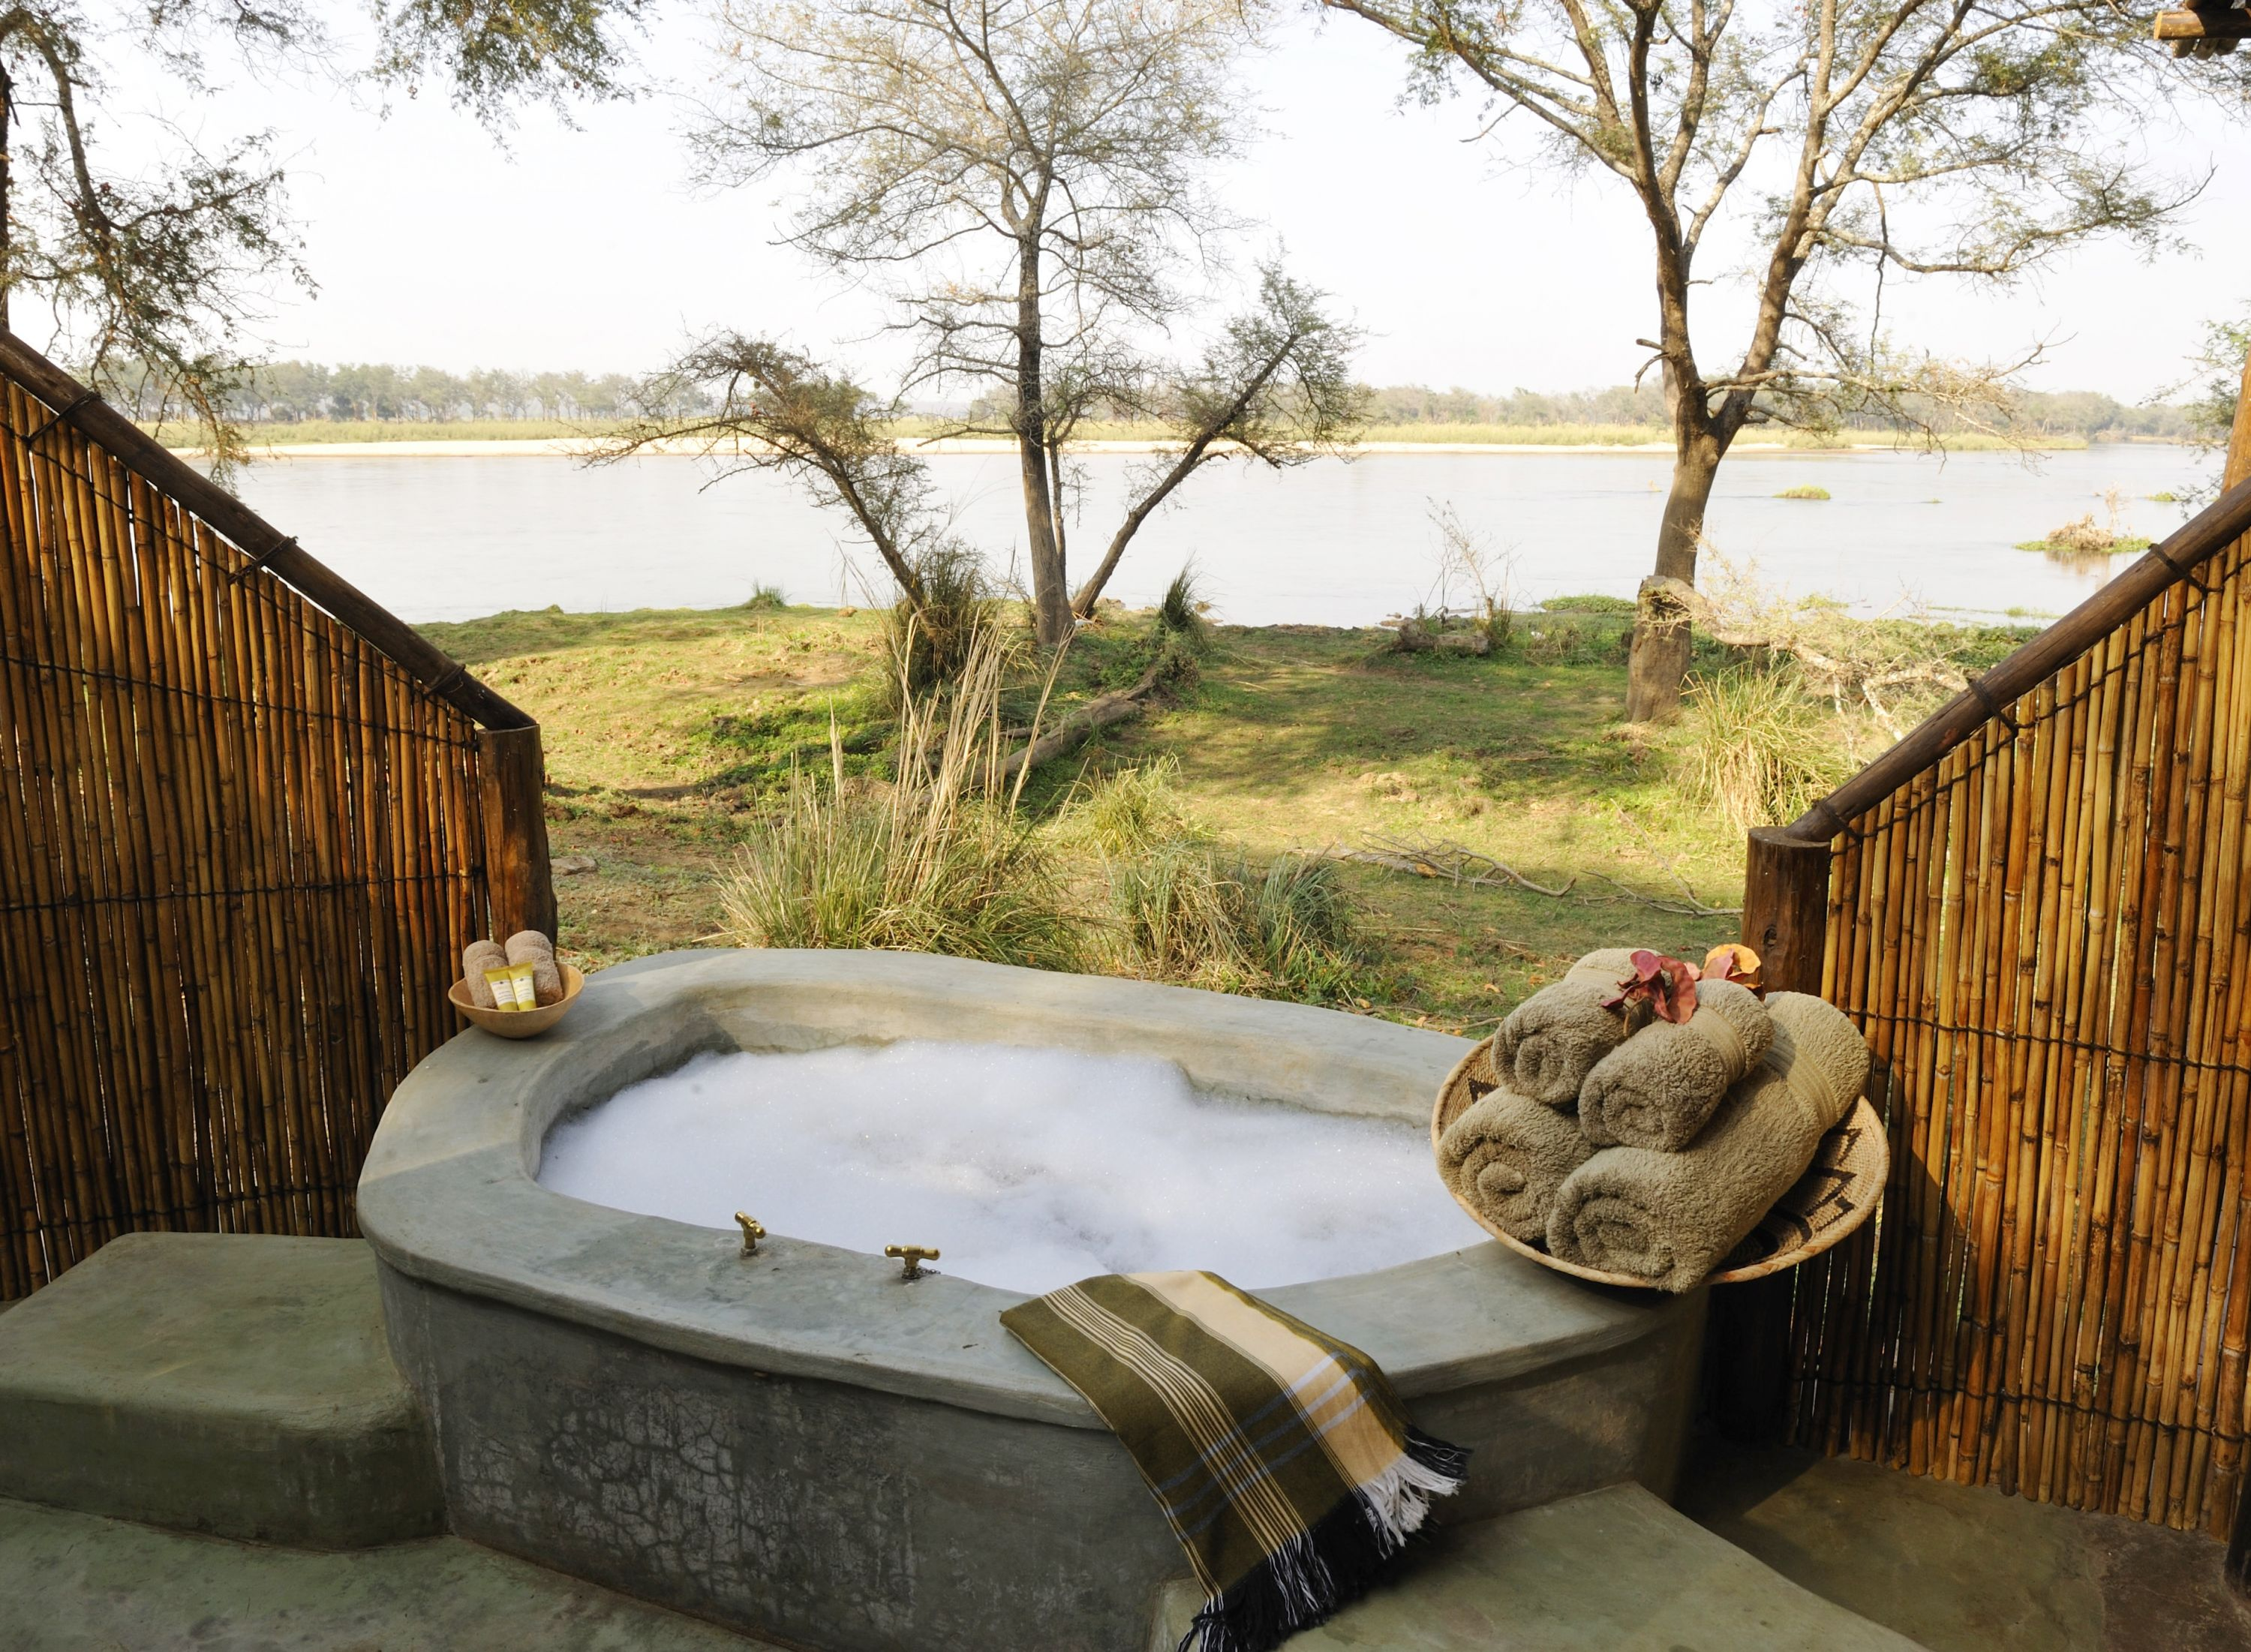 Ol Mondoro - Lower Zambezi National Park - Zambia